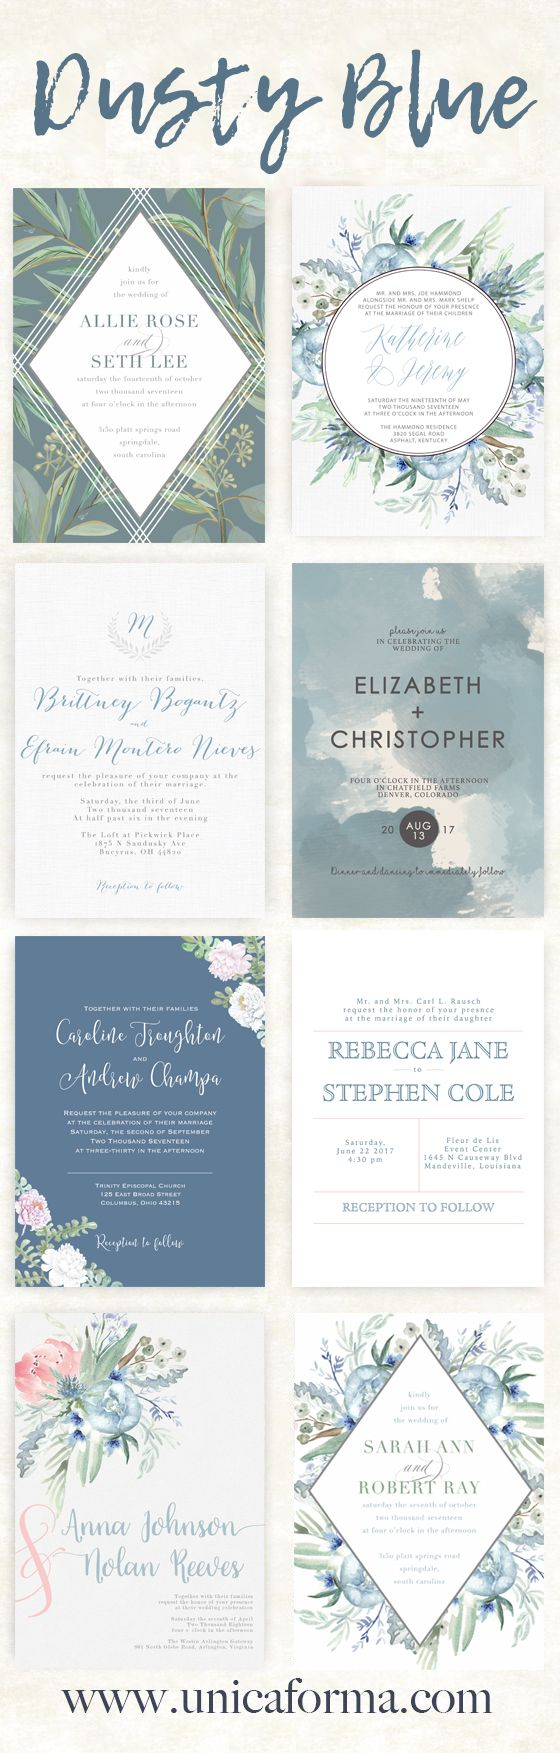 Dusty blue wedding invitations Slate blue wedding invitations Calligraphy wedding invitations Watercolor wedding